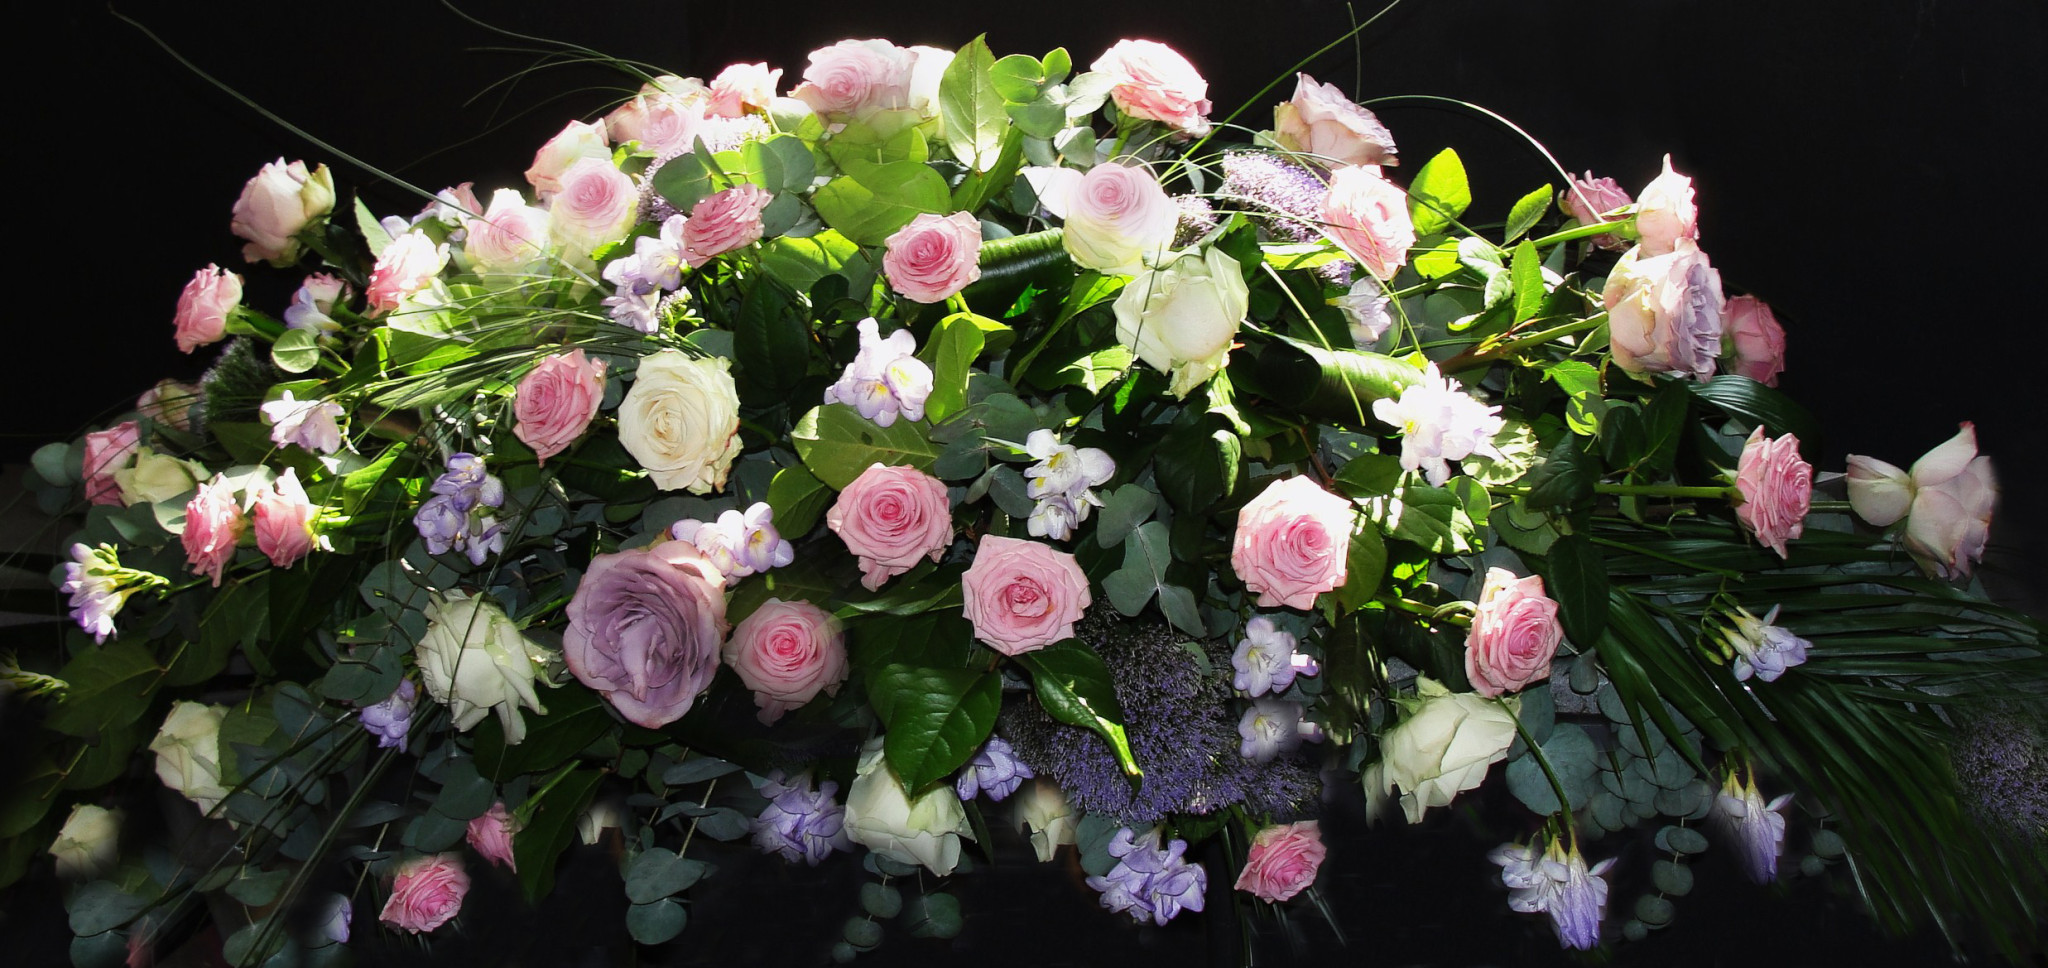 Flowers for funerals voucher code discount code offer by dealslands flowers for funerals promo code izmirmasajfo